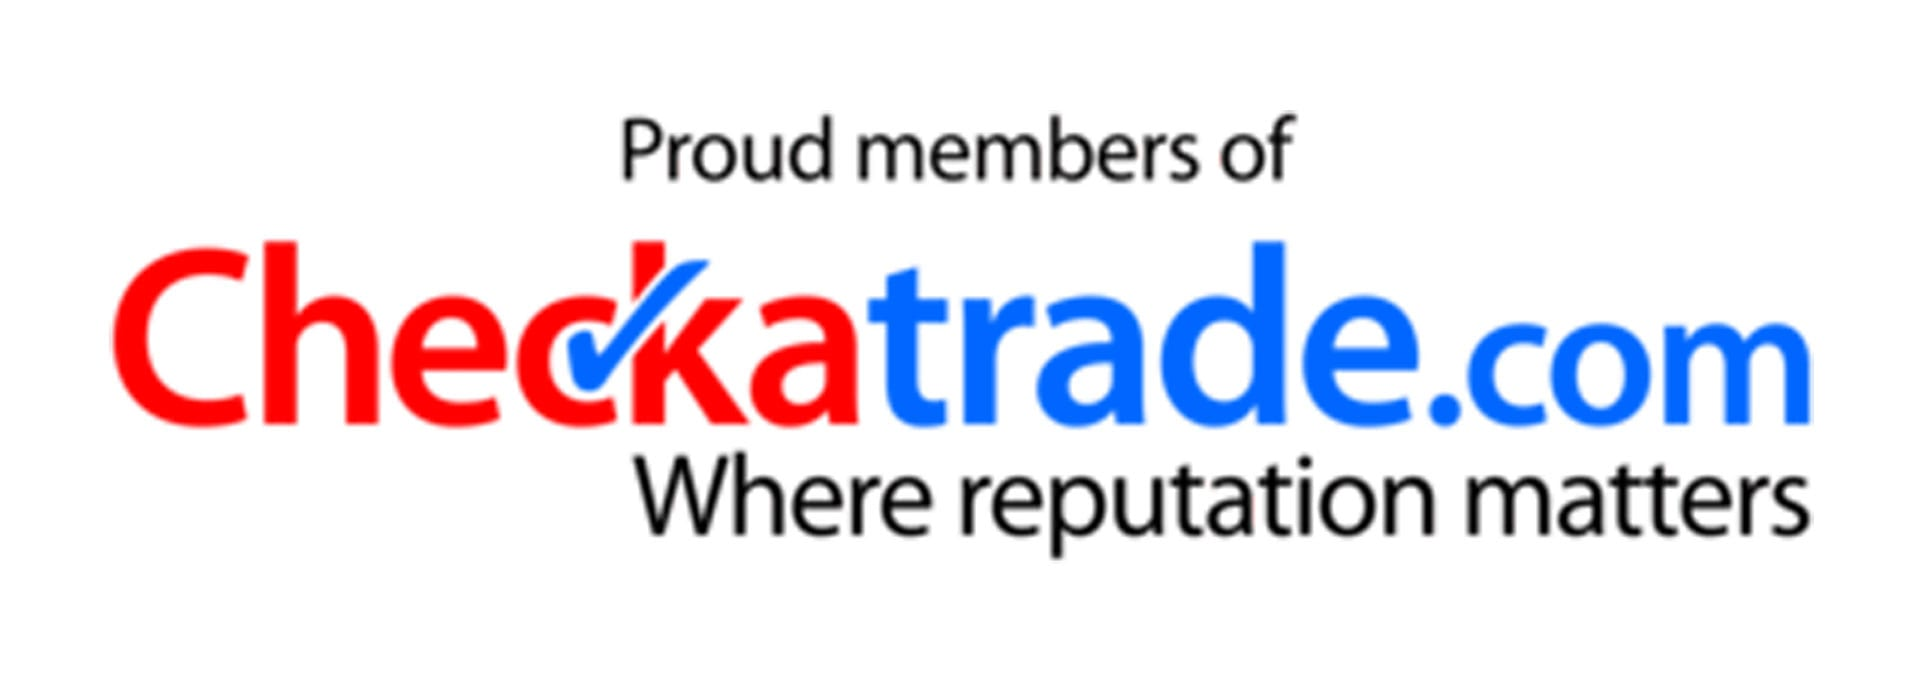 Warrior Locksmiths in Rothwell are proud members of Check a Trade